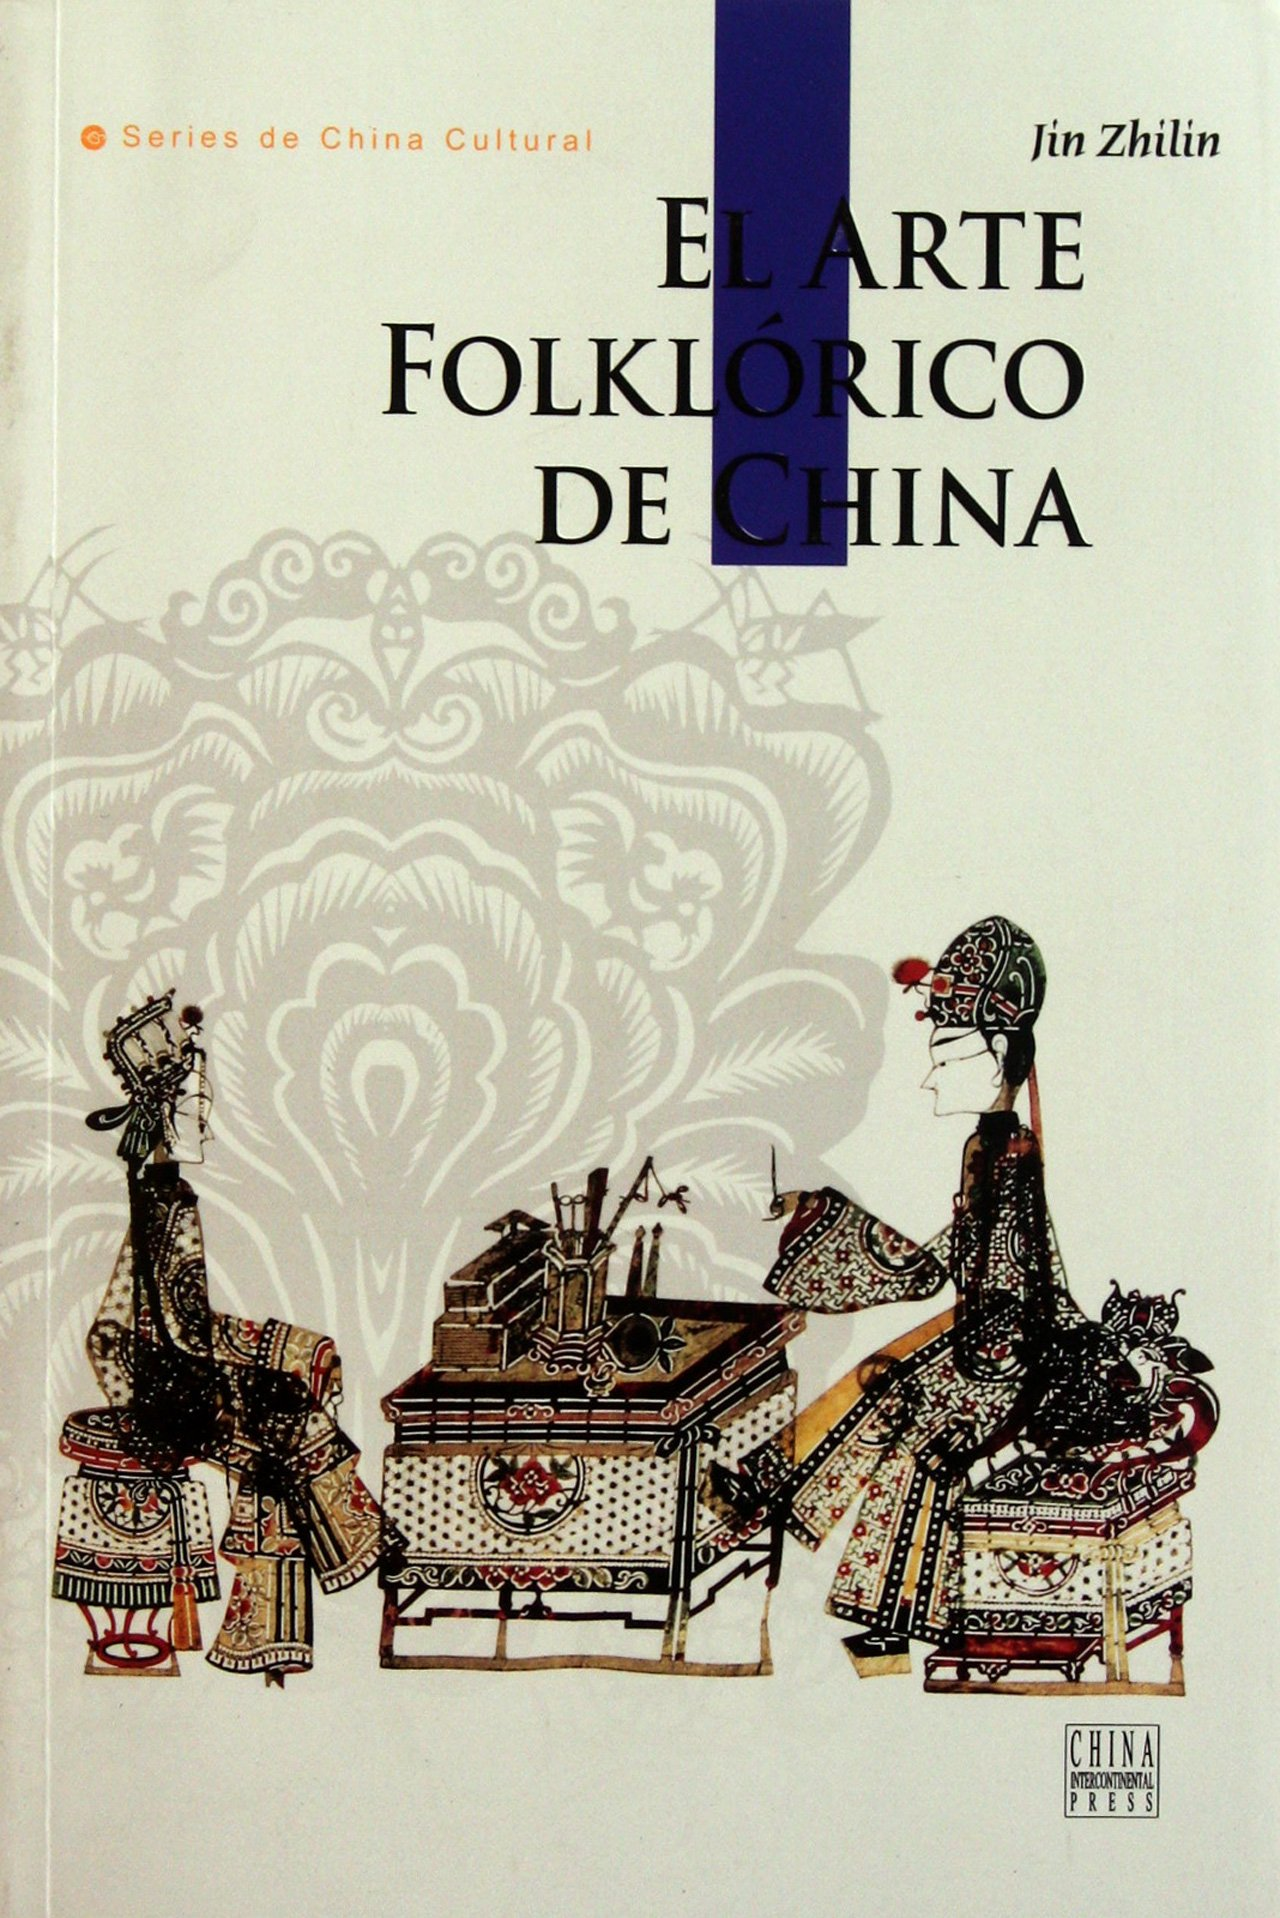 Download Chinese Folk Arts: Multiple Forms and Cultural Implications (Spanish Edition) ebook